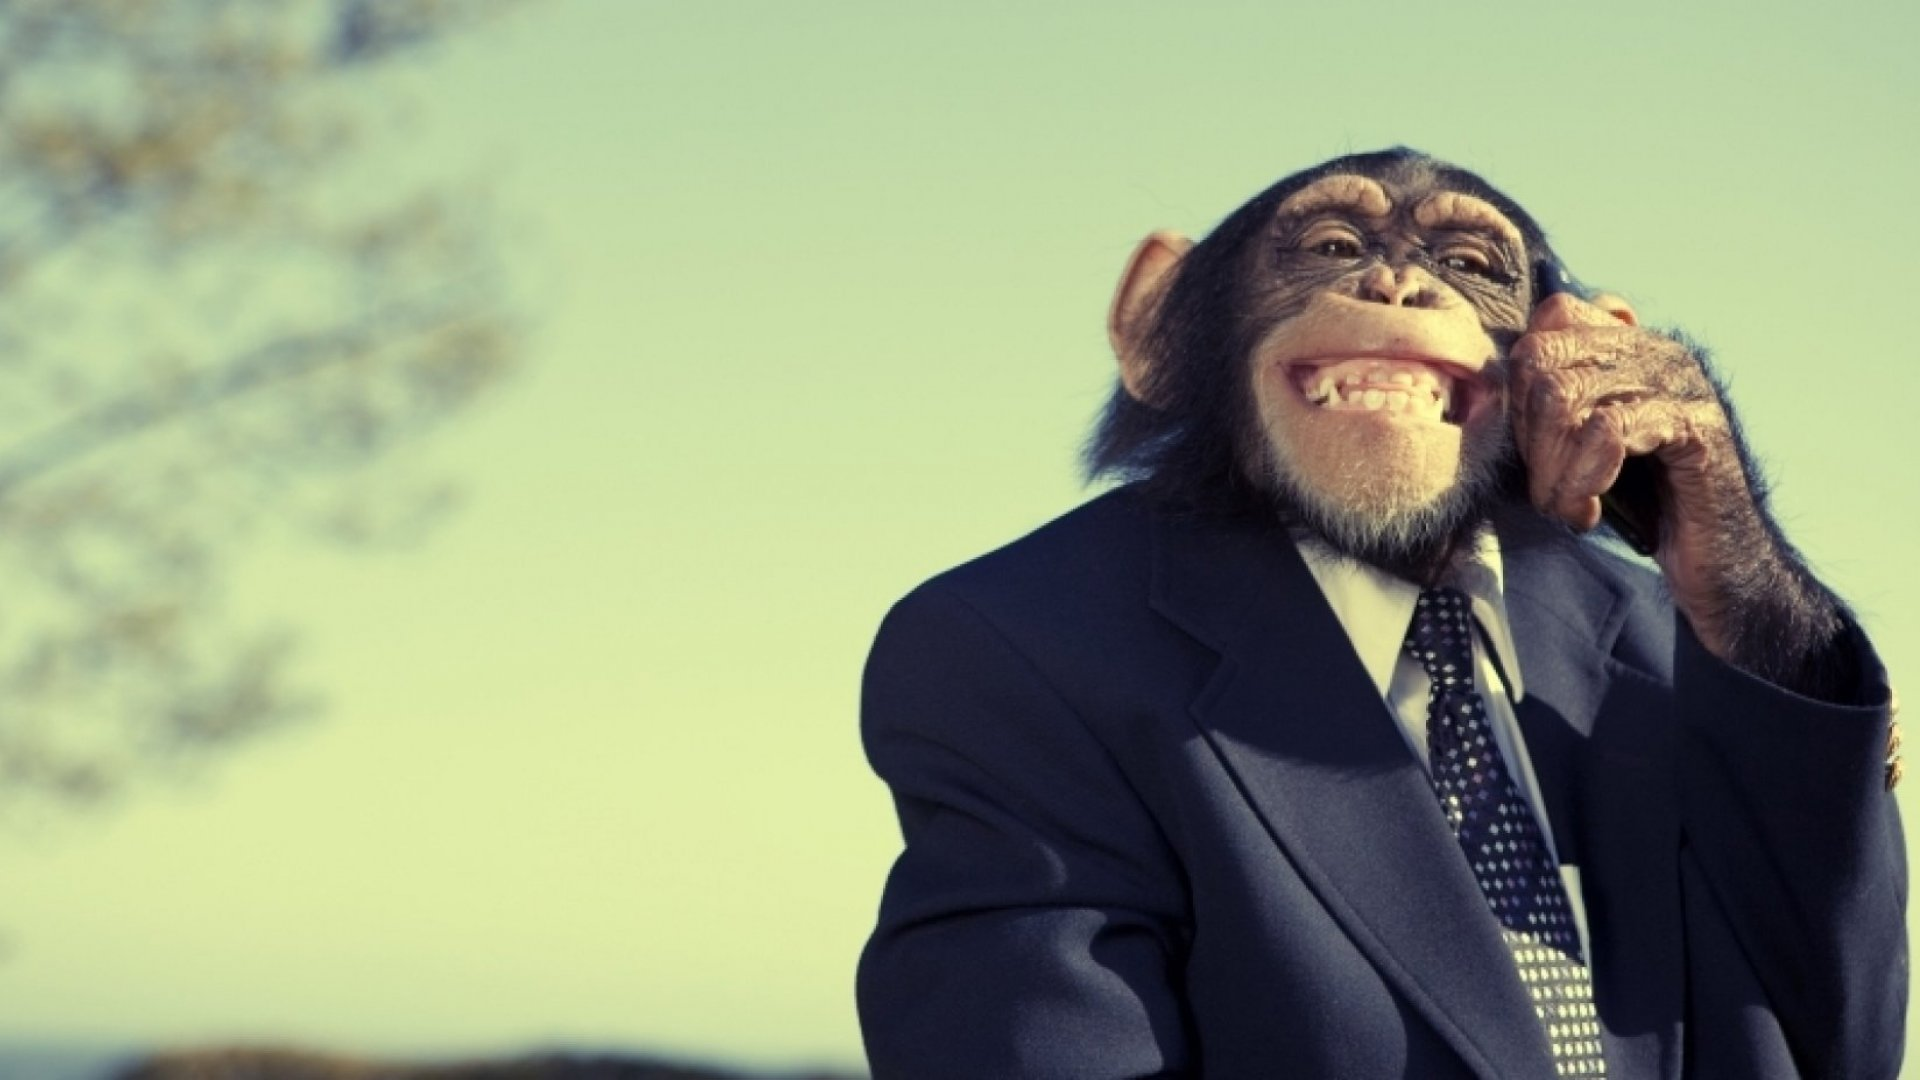 It's Official: Wearing a Suit Makes You Less Effective